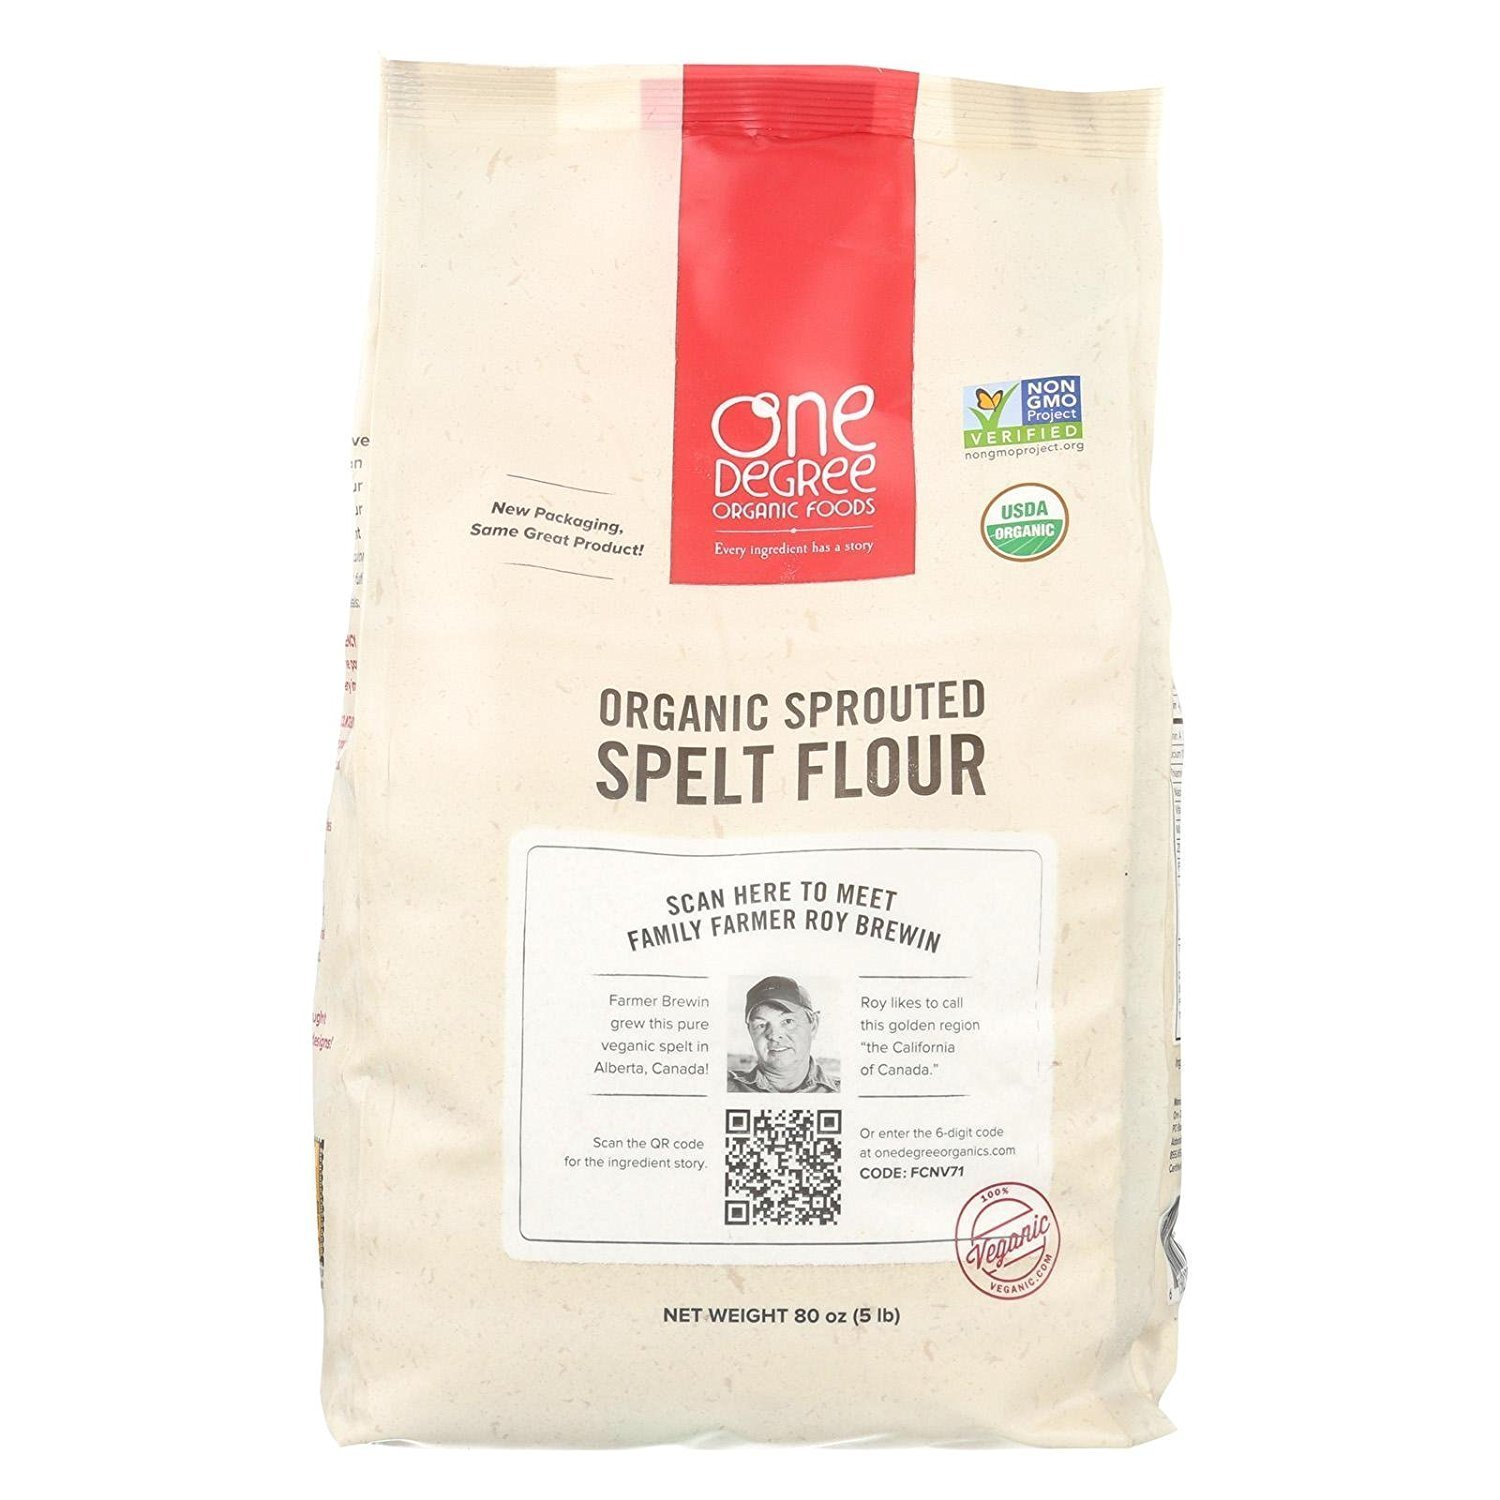 Sprouted Spelt Flour 80 Ounces (Case of 4) by One Degree Organic Foods